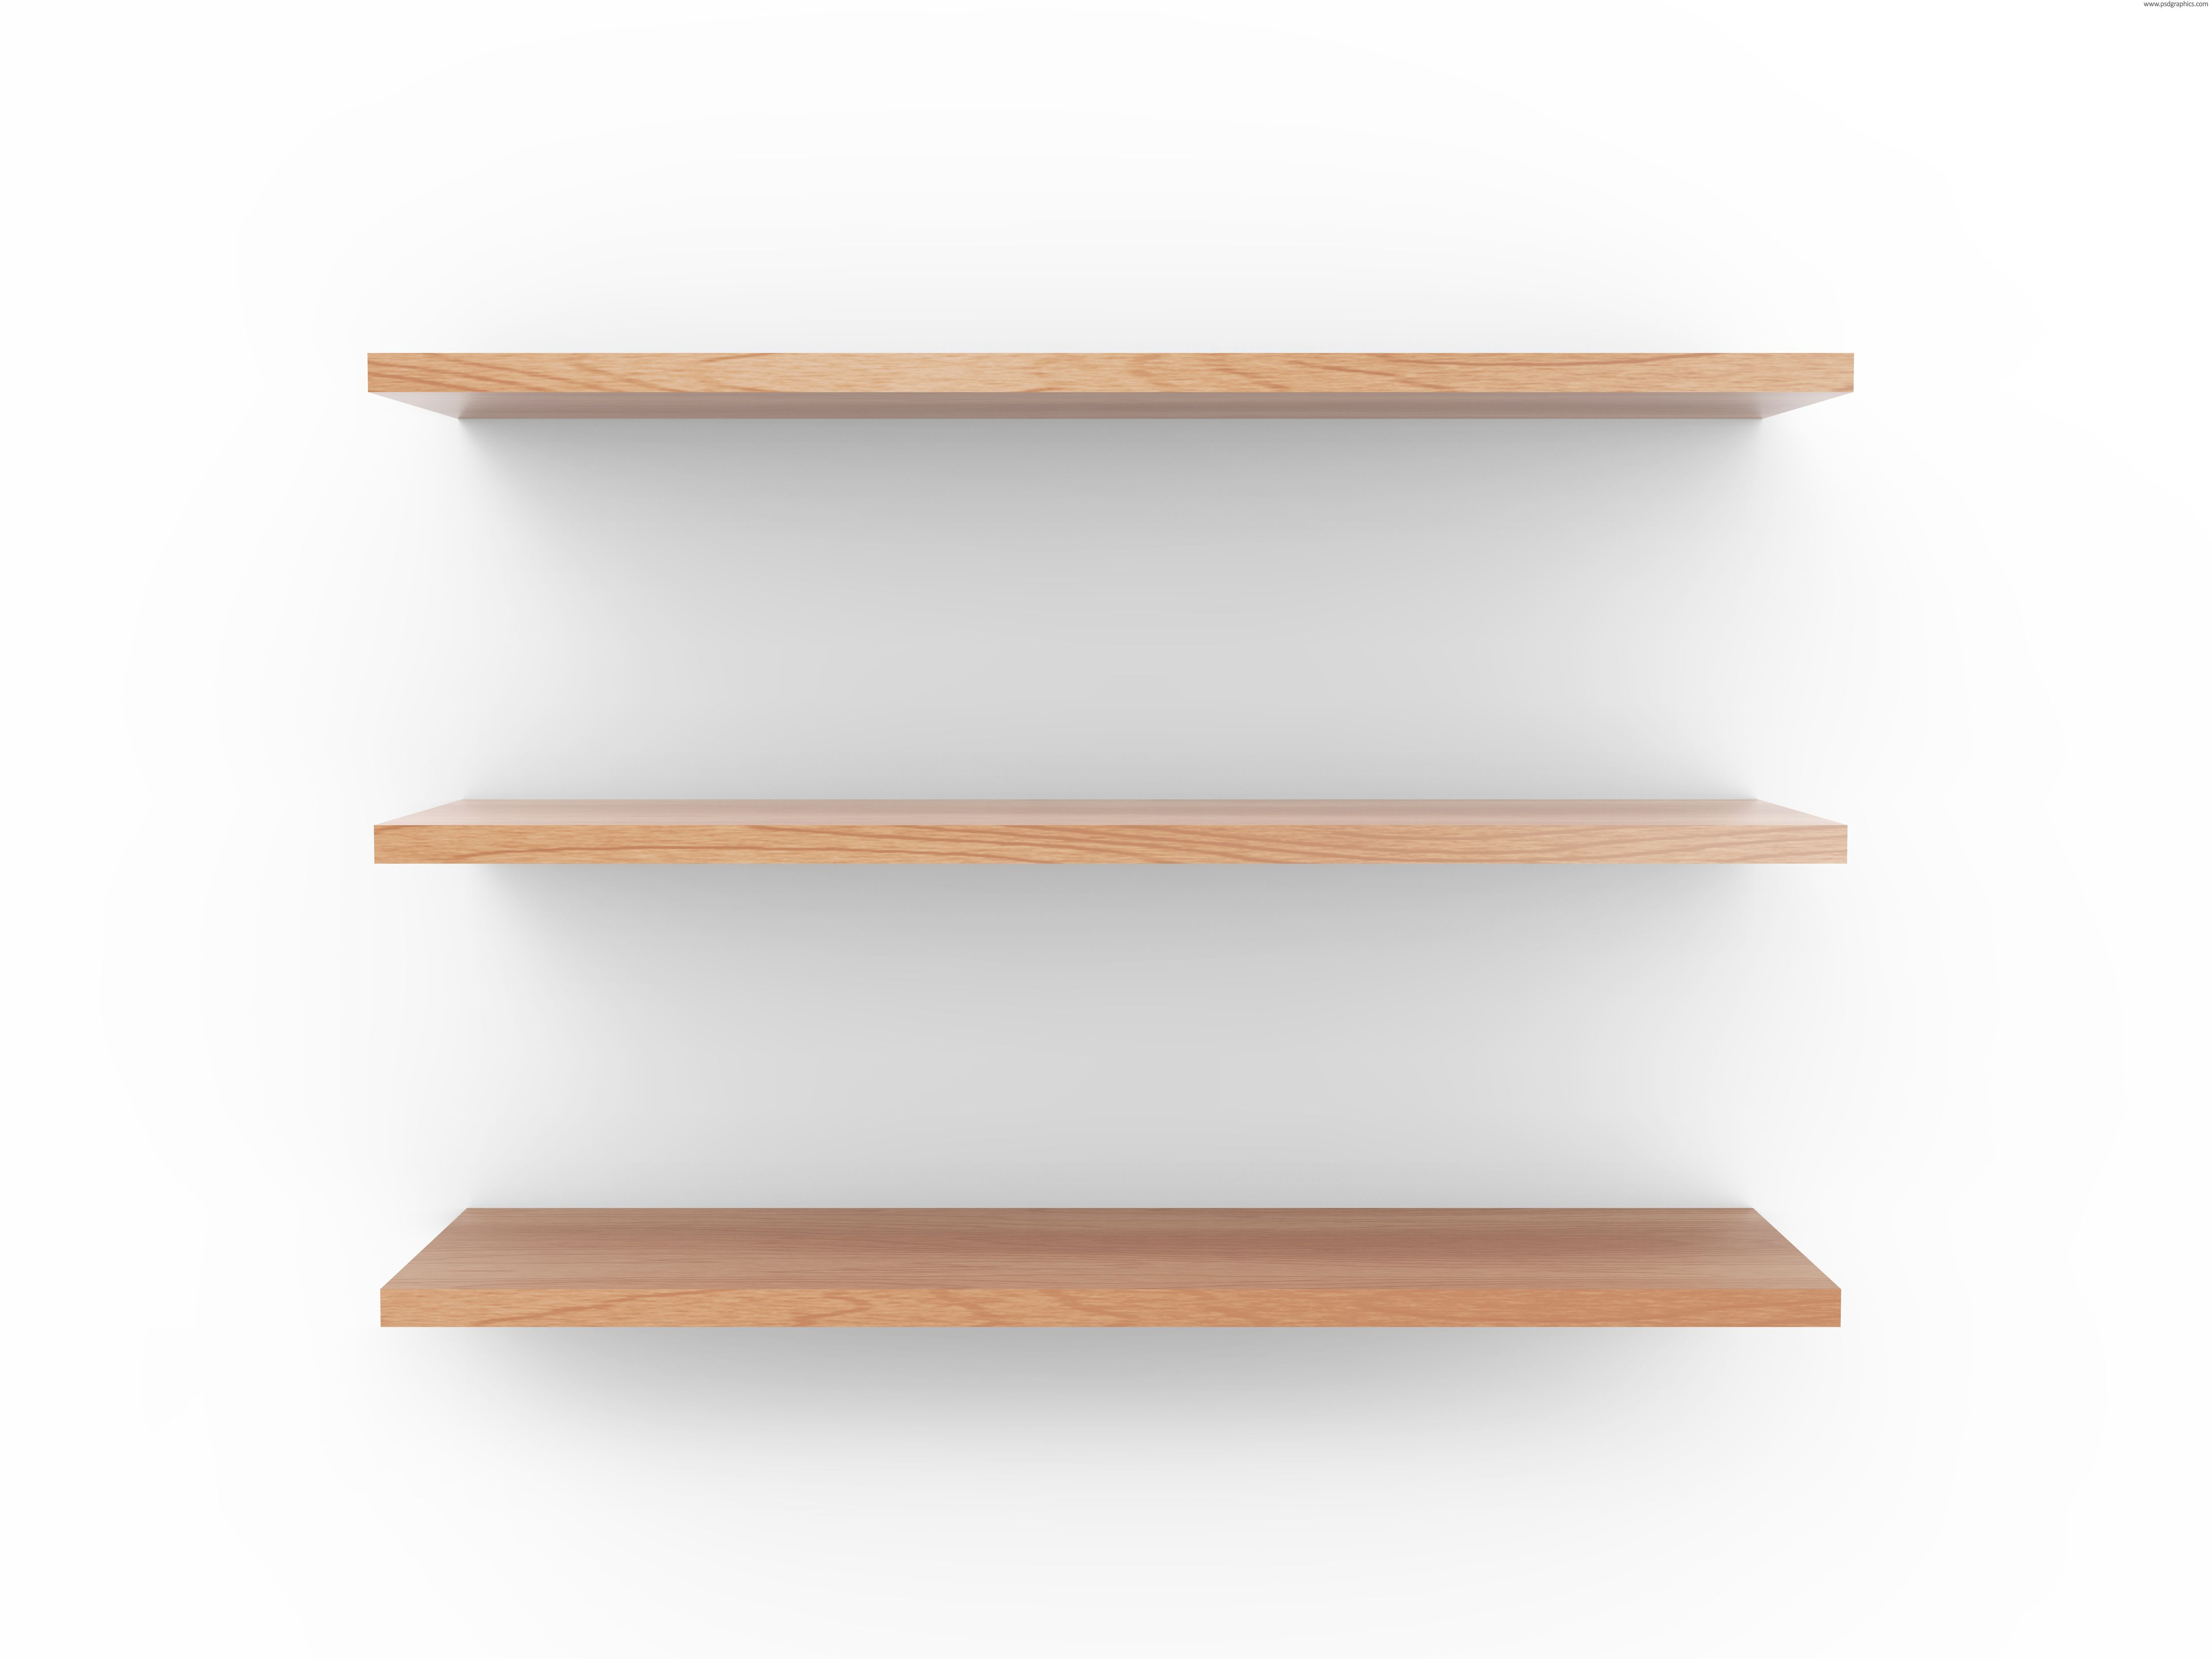 Wood Shelf Design Diy Woodworking Projects In 2019